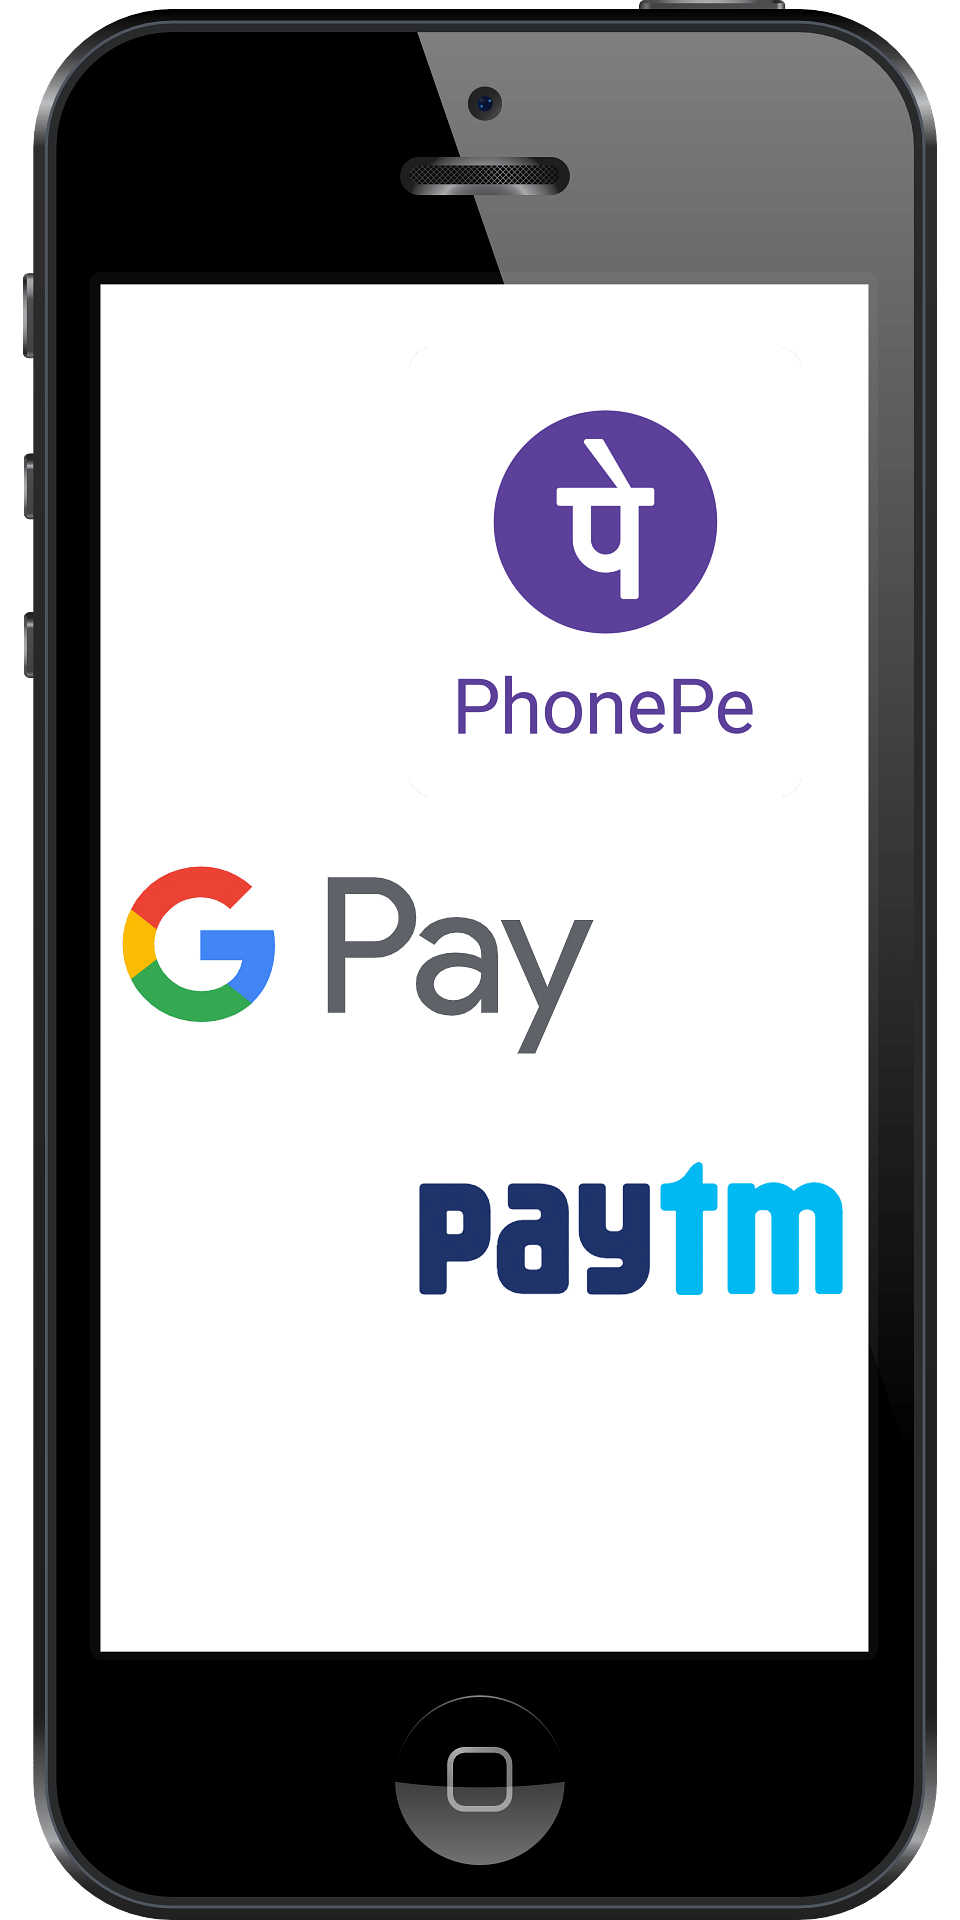 The findings showed that 93 per cent of Indian respondents prefer using digital wallets regularly as compared to their global counterparts' average of 55 per cent.